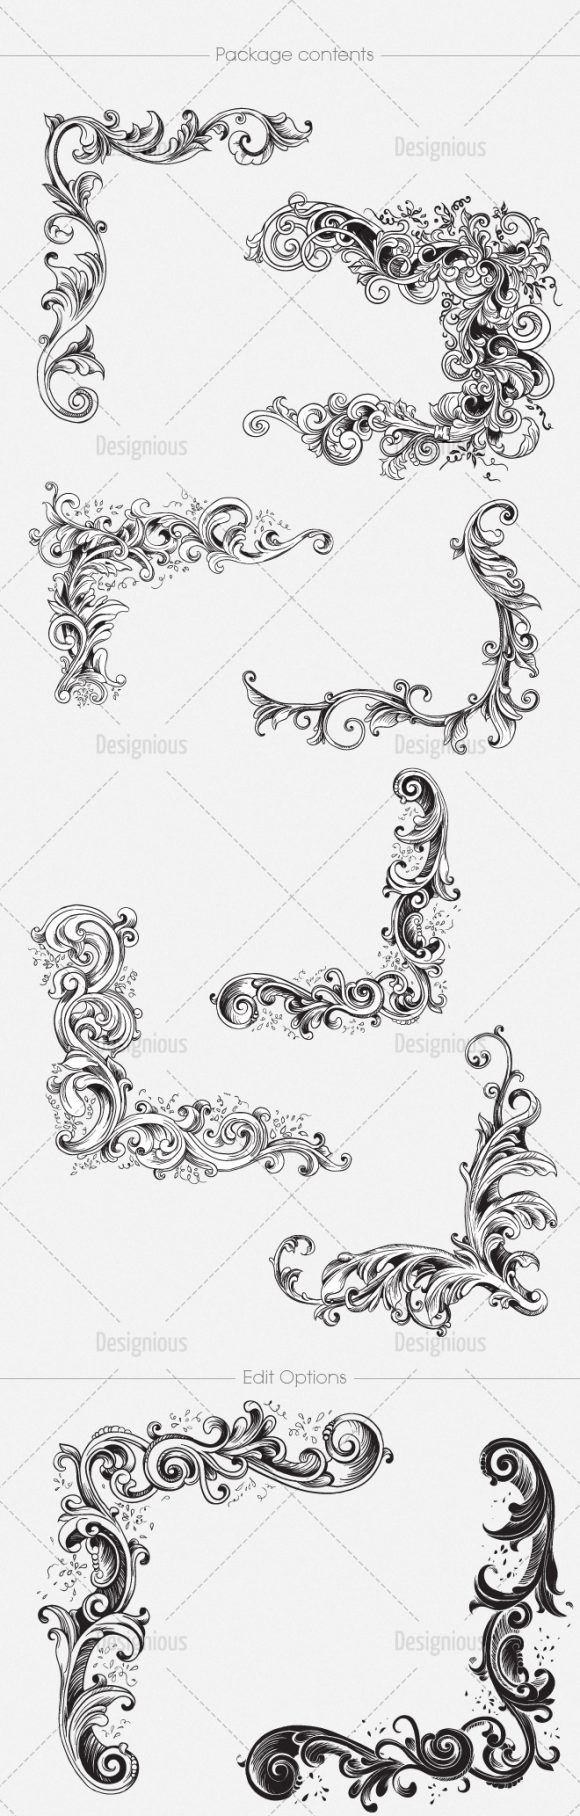 Free Floral Vector Pack 139 2